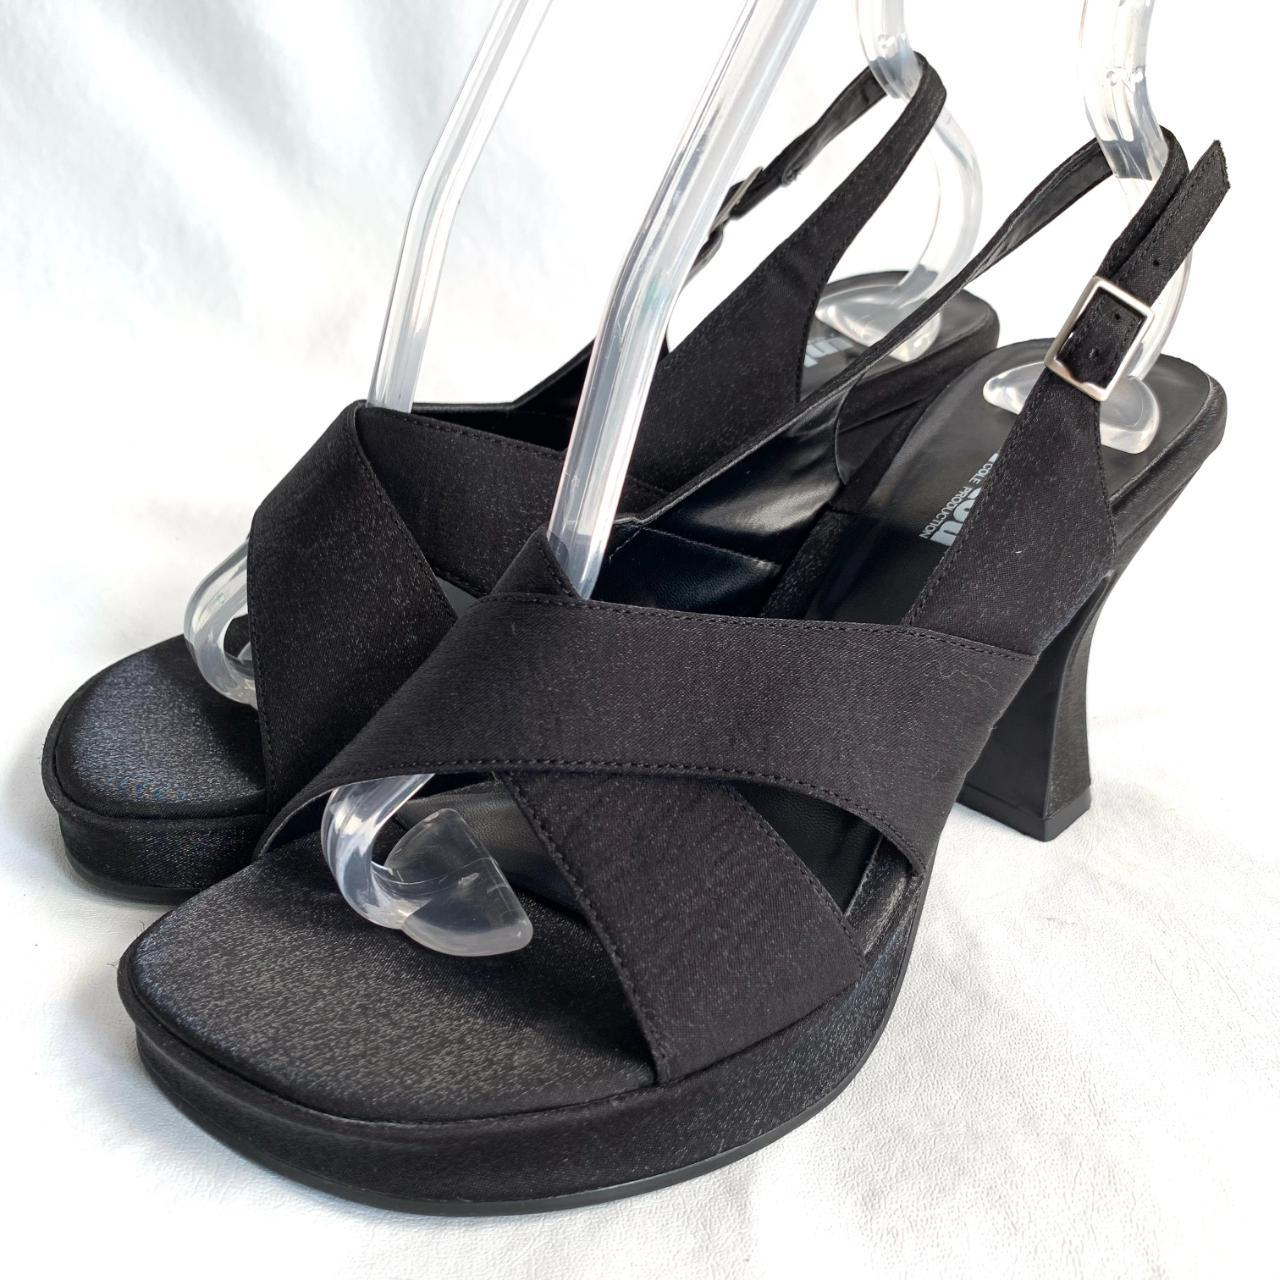 Product Image 1 - y2k high heel sandals, Unlisted